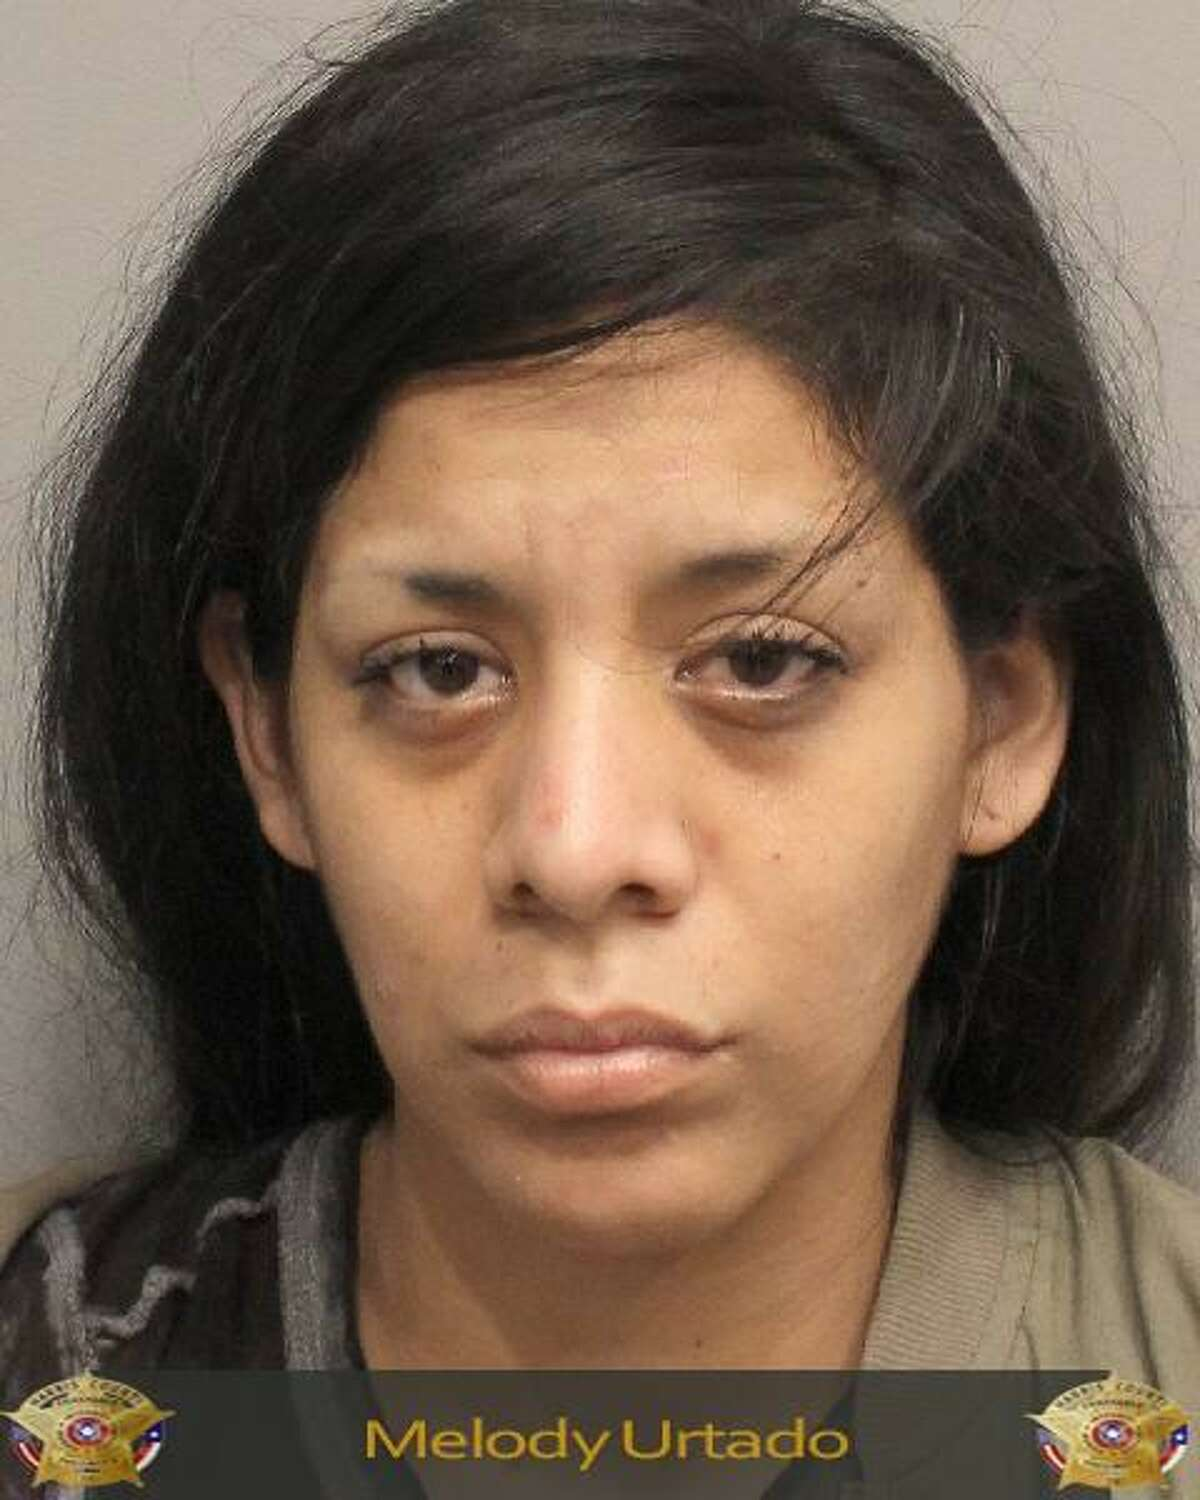 Following a lengthy investigation, deputies with Harris County Precinct 5 Constable Ted Heap's Office arrested Melody Urtado, 30, on apossession of a controlled substance charge on Tuesday, March 26, 2019.